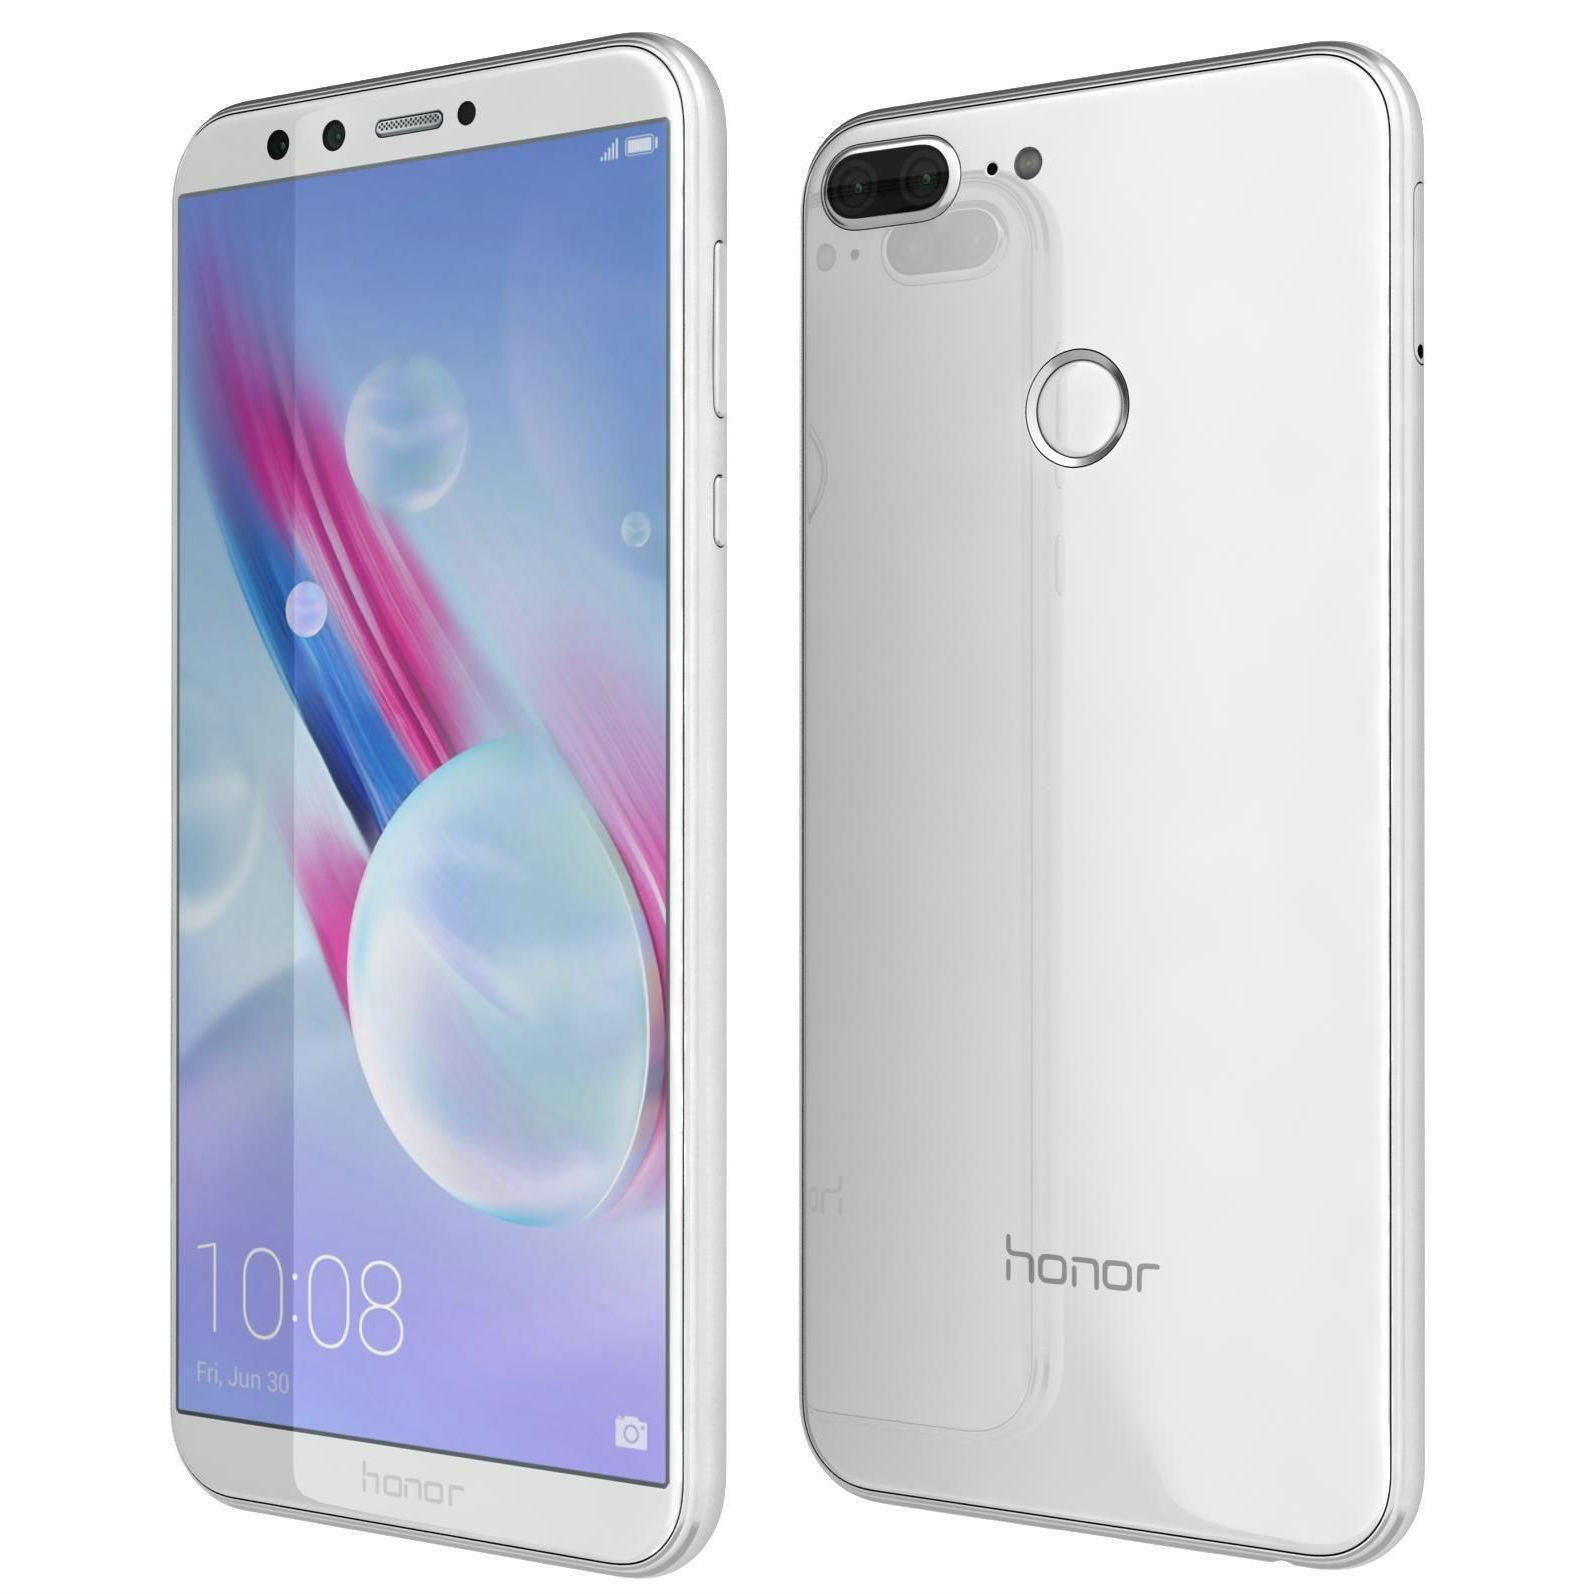 Image of Huawei Honor 9 Lite LLD-AL00 3GB/32GB Dual Sim SIM FREE/ UNLOCKED - White